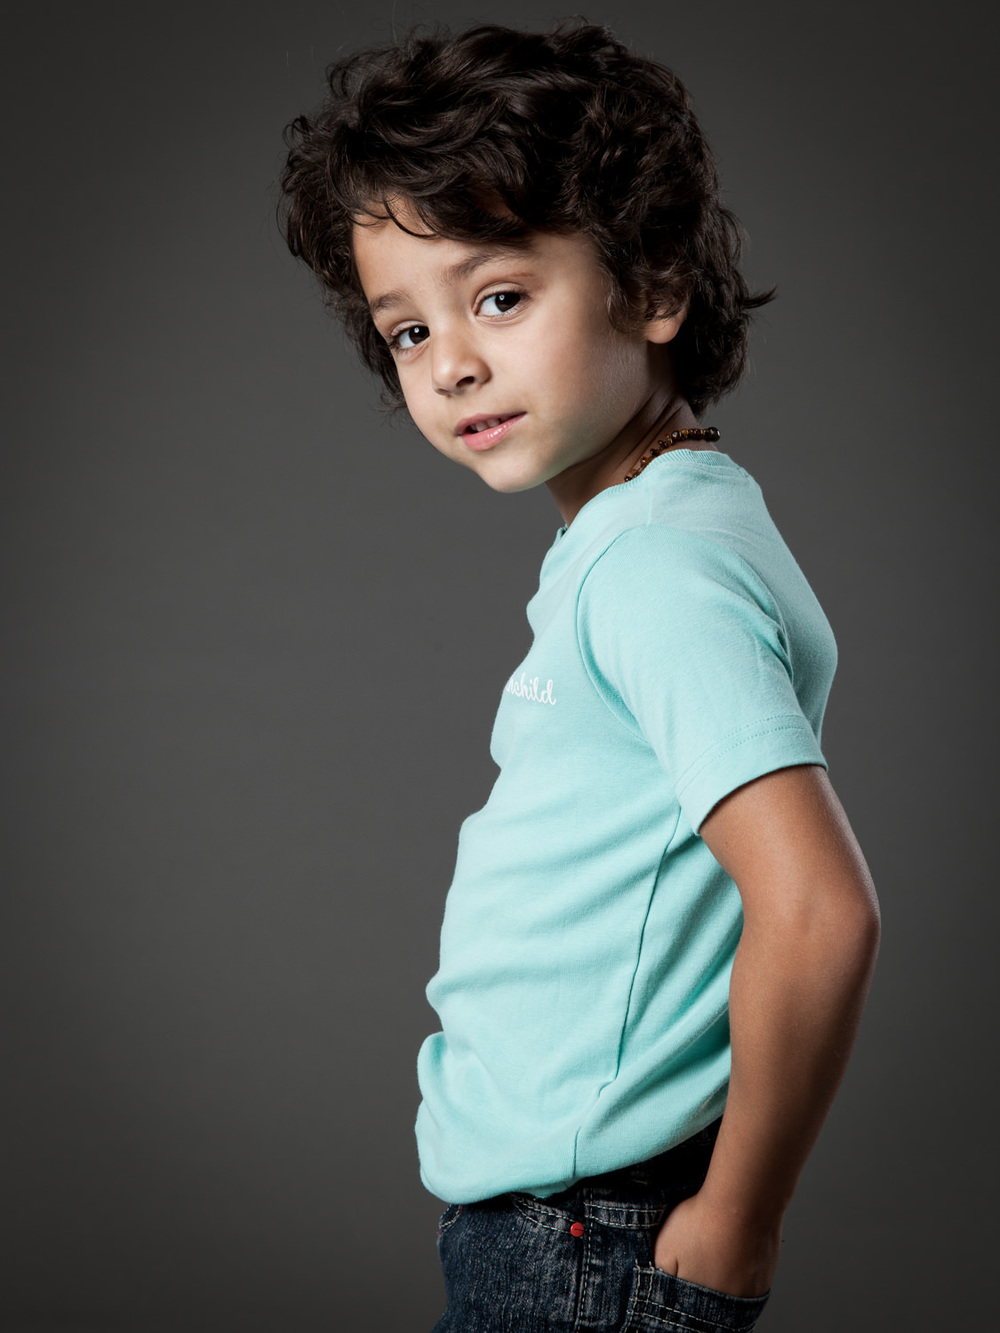 tim gerges capetown photographer kids fashion-0125.jpg